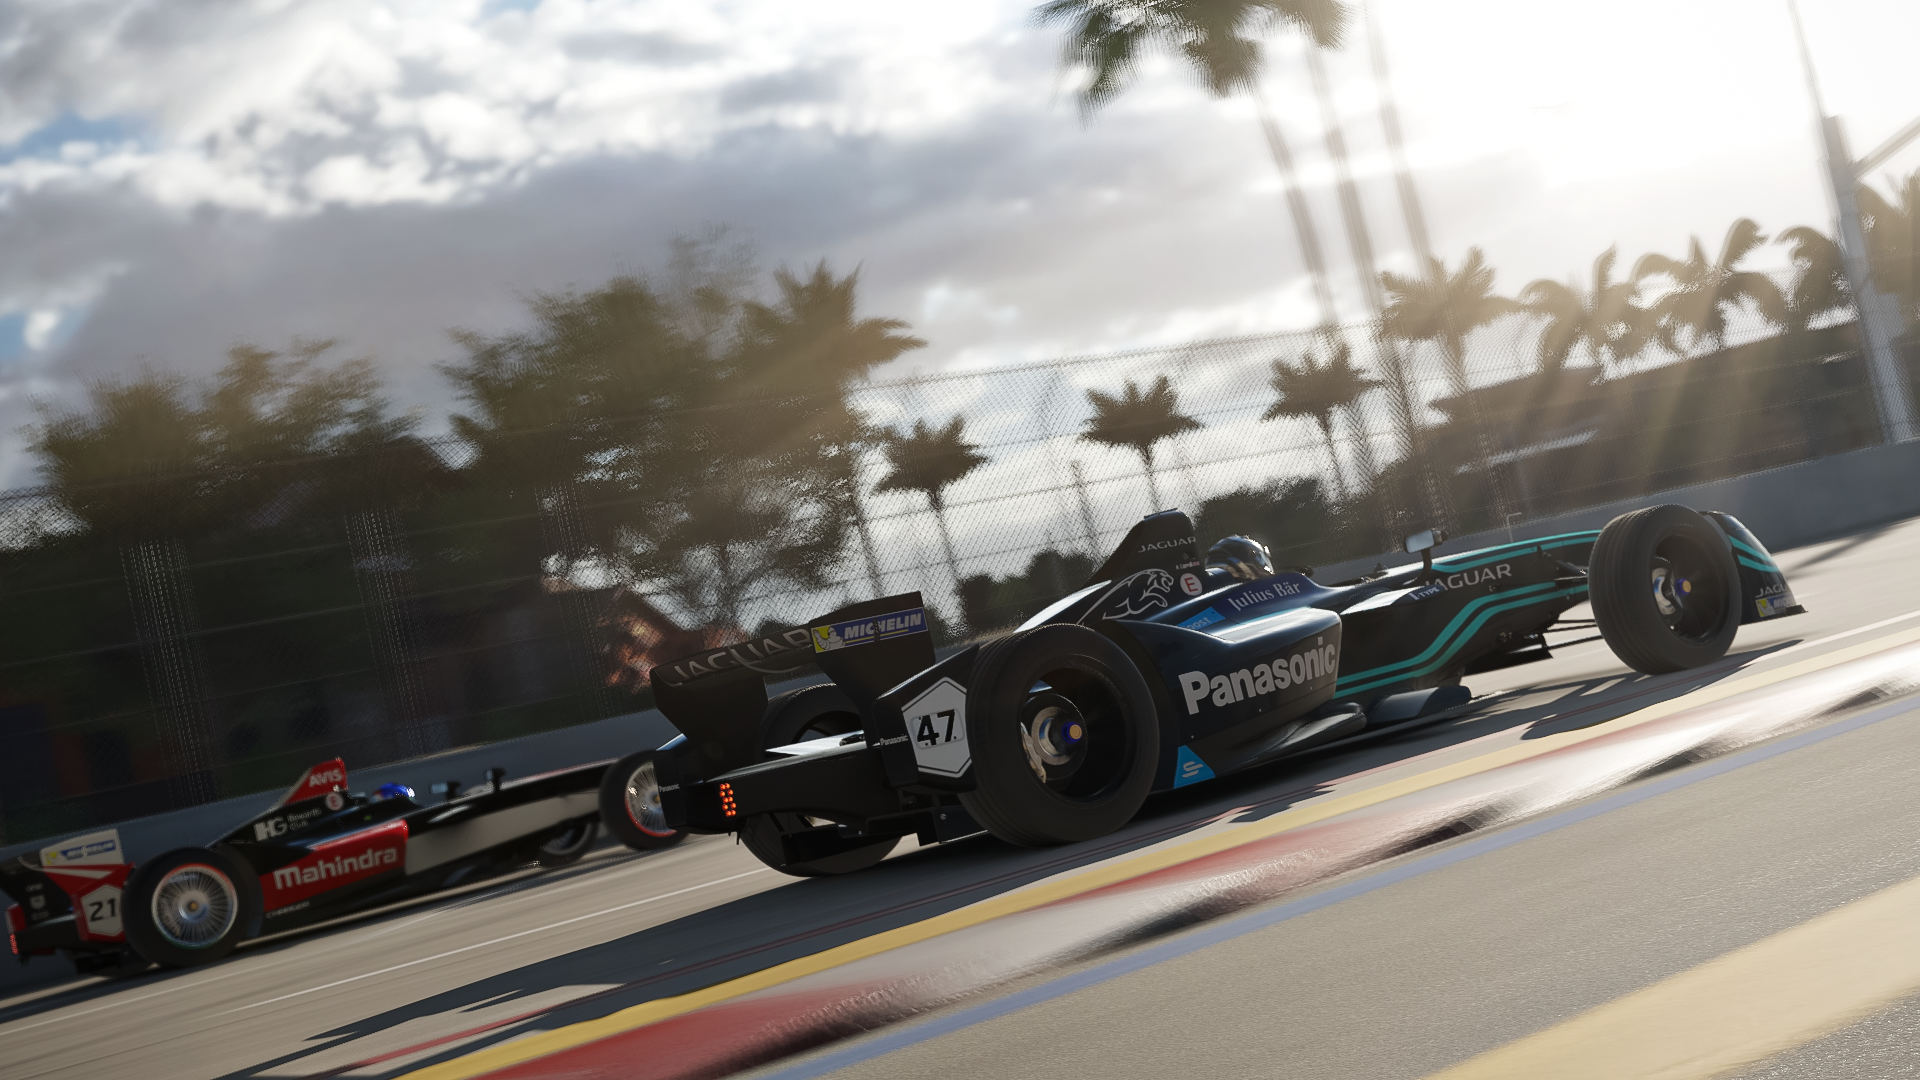 How To Earn Credits and XP Fast in Forza Motorsport 7